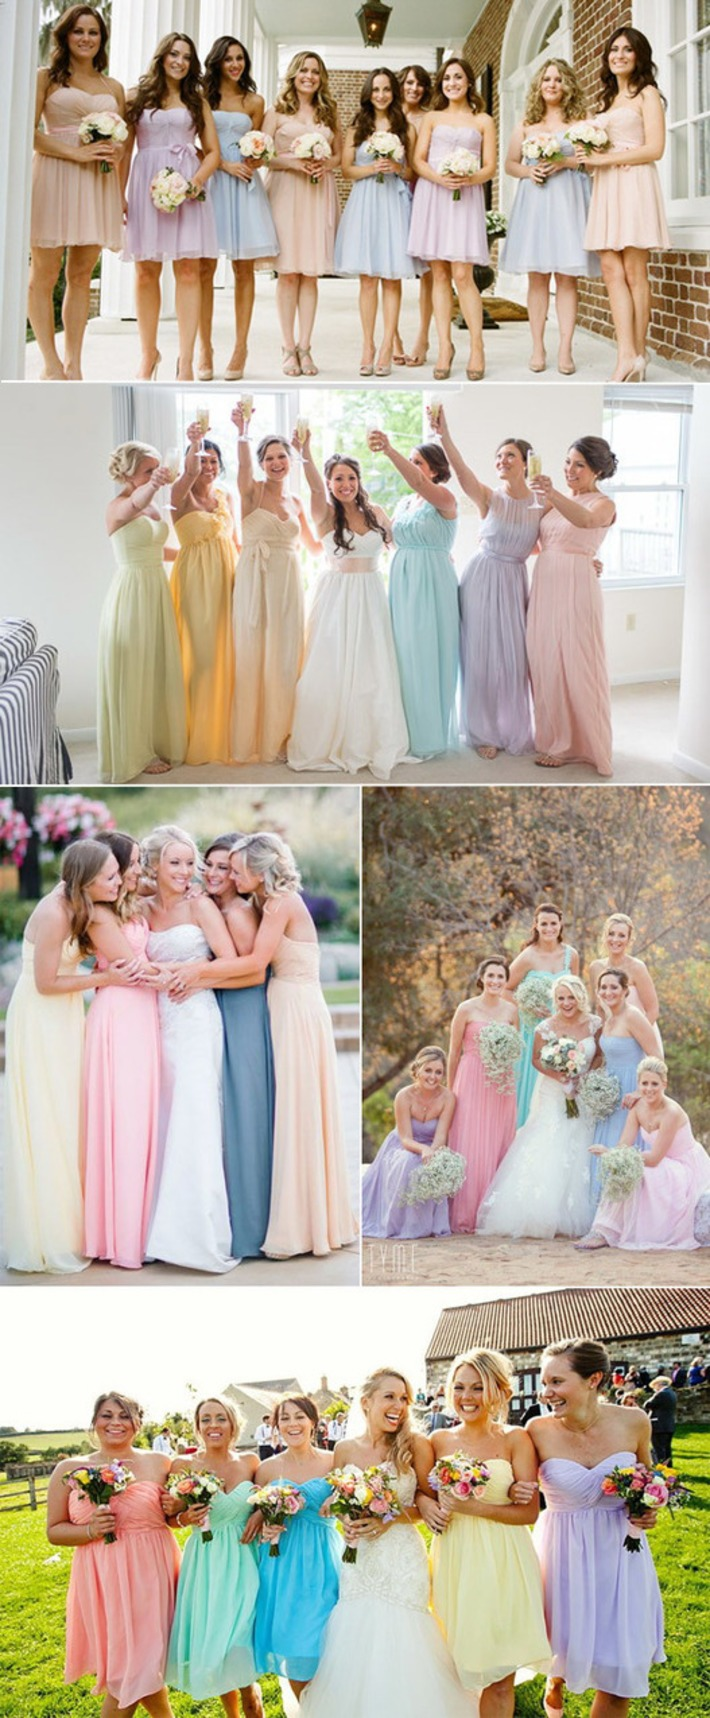 Top 7 Wedding Ideas & Trends for Spring/Summer 2015 | Wedding Ideas | Scoop.it